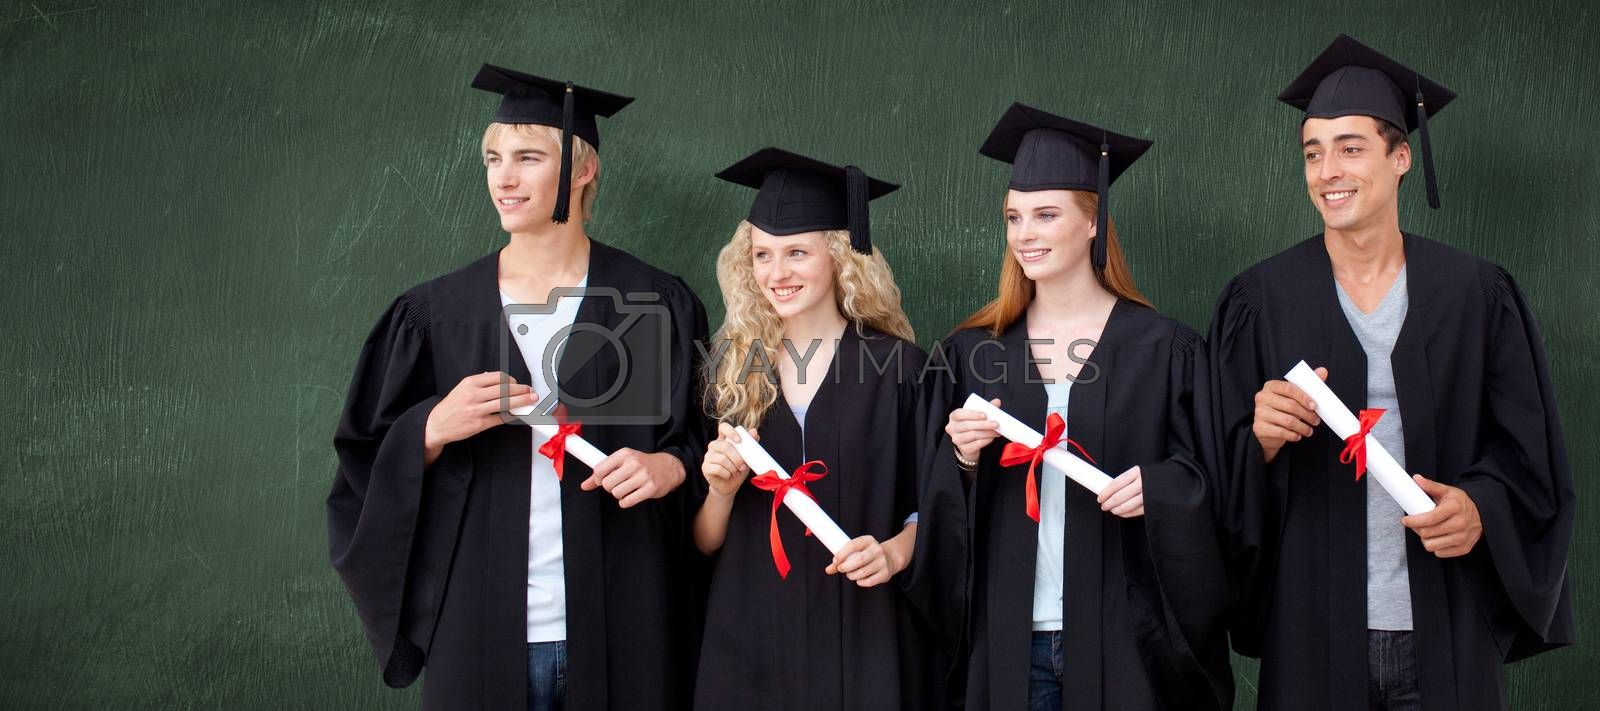 Group of people celebrating after Graduation against green chalkboard